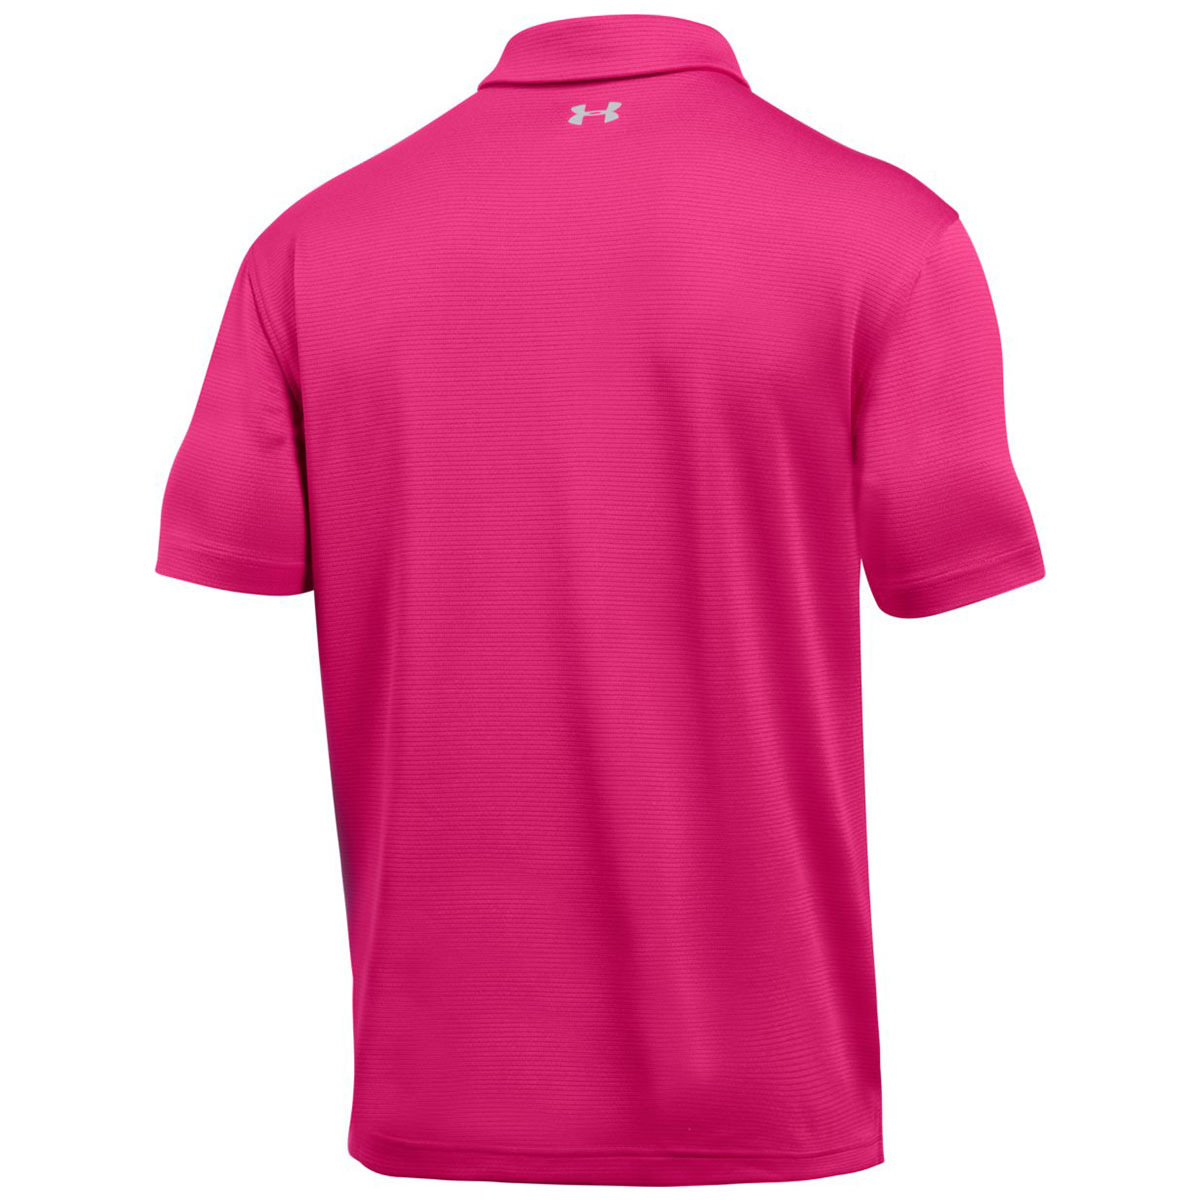 Under-Armour-Mens-Golf-Tech-Wicking-Textured-Soft-Light-Polo-Shirt thumbnail 85